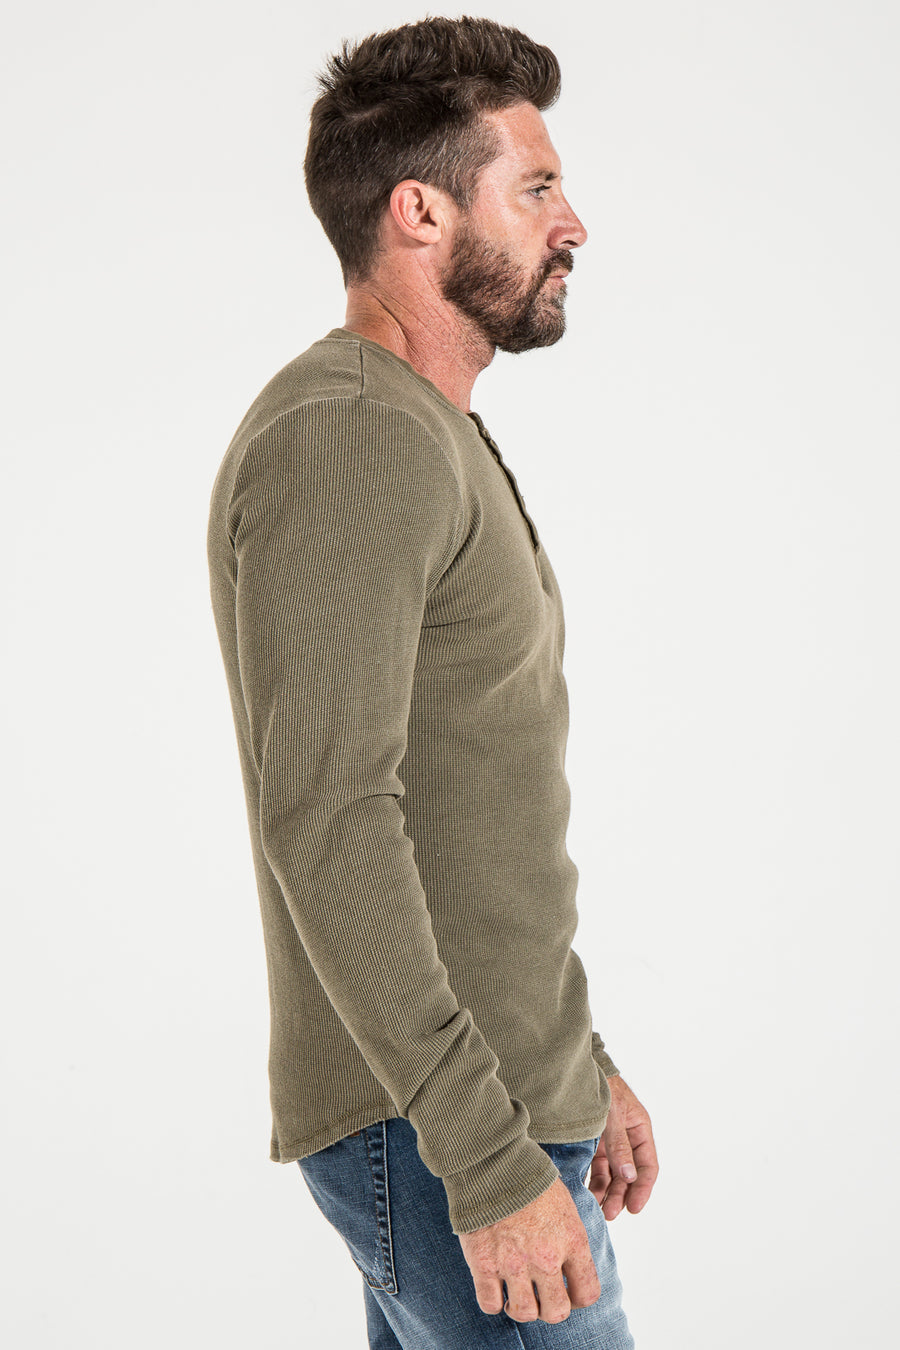 HENLEY SLIM IN DARK OLIVE THERMAL KNIT